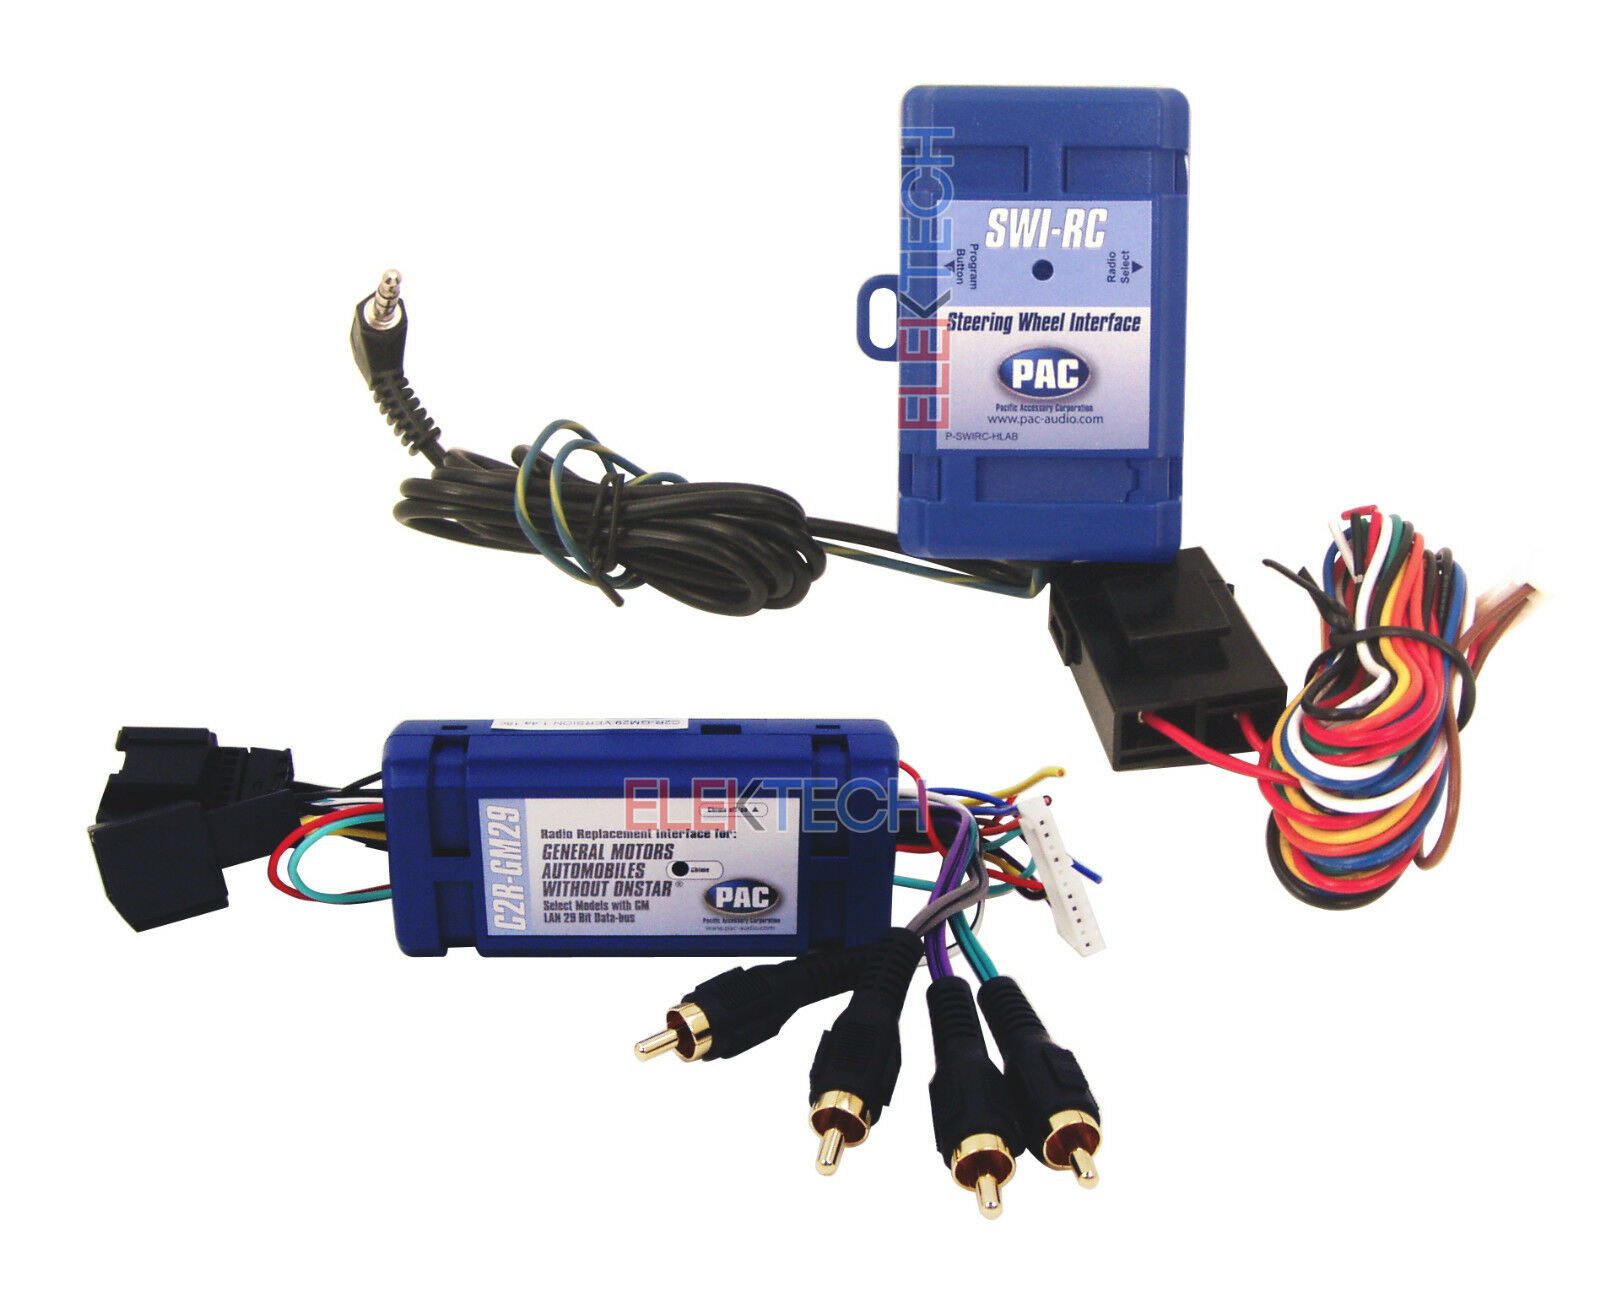 Pac Radio Replacement Interface And Steering Wheel Control Retention Gm Lan 29 Wiring Diagram 1 Of 7only Available